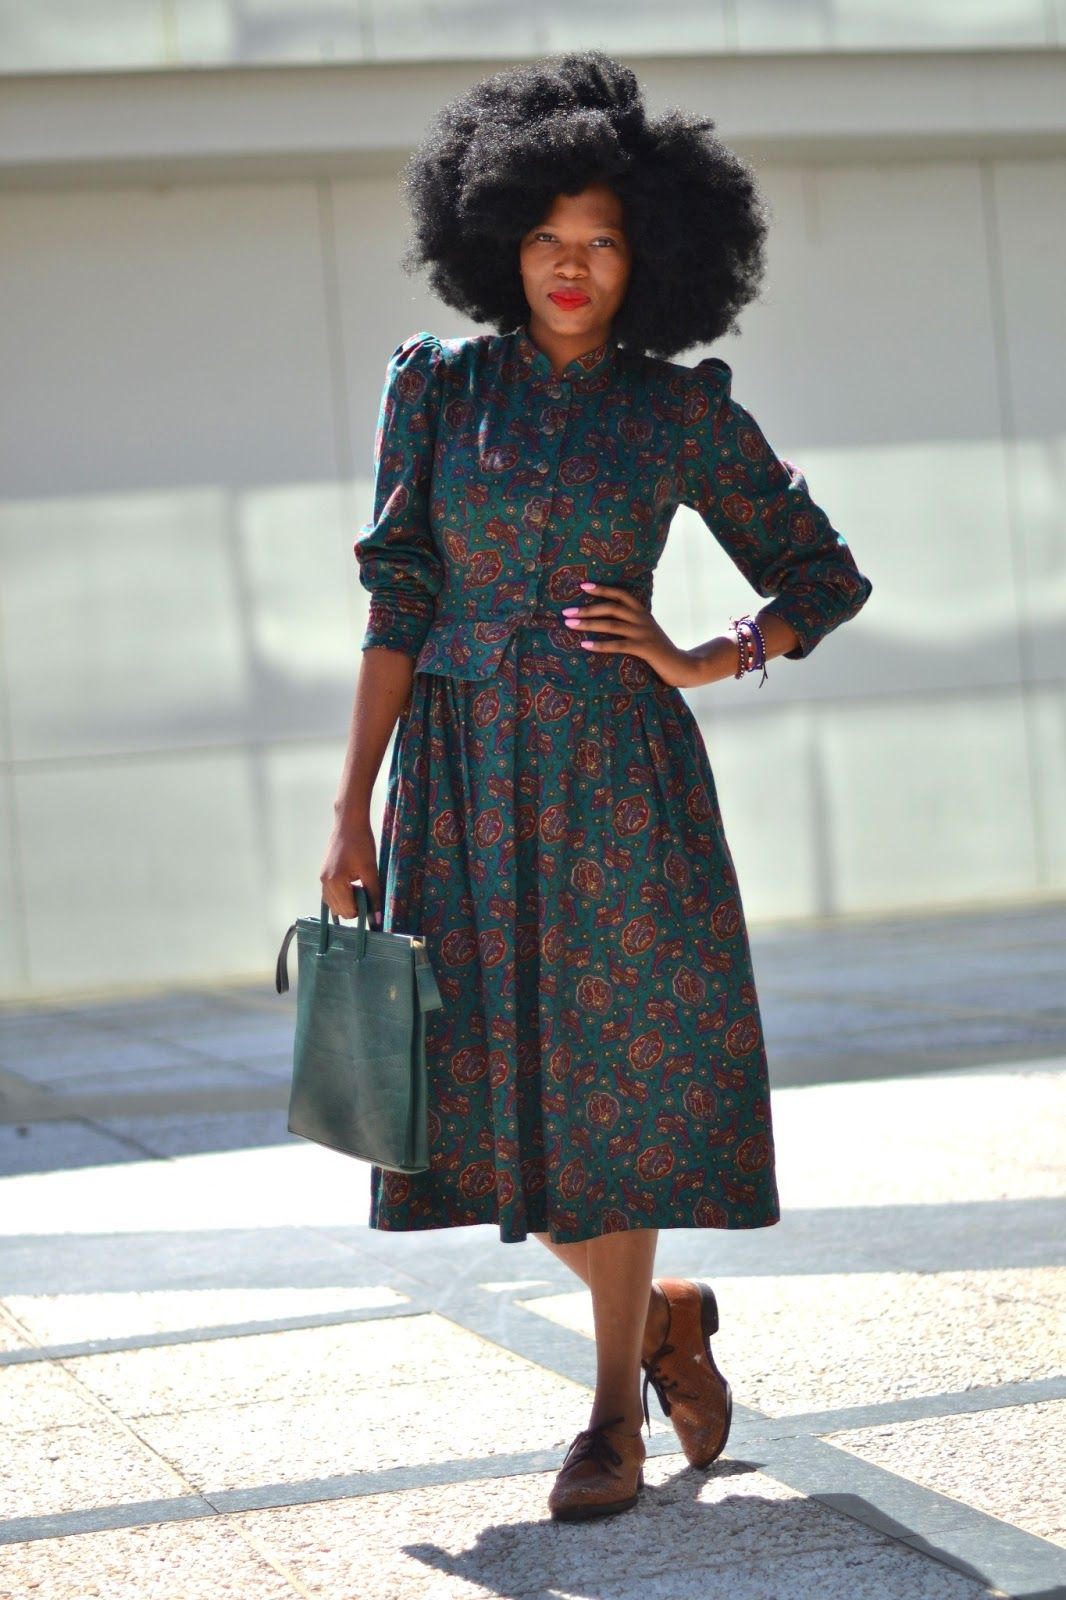 I love this woman's command on vintage clothing , she